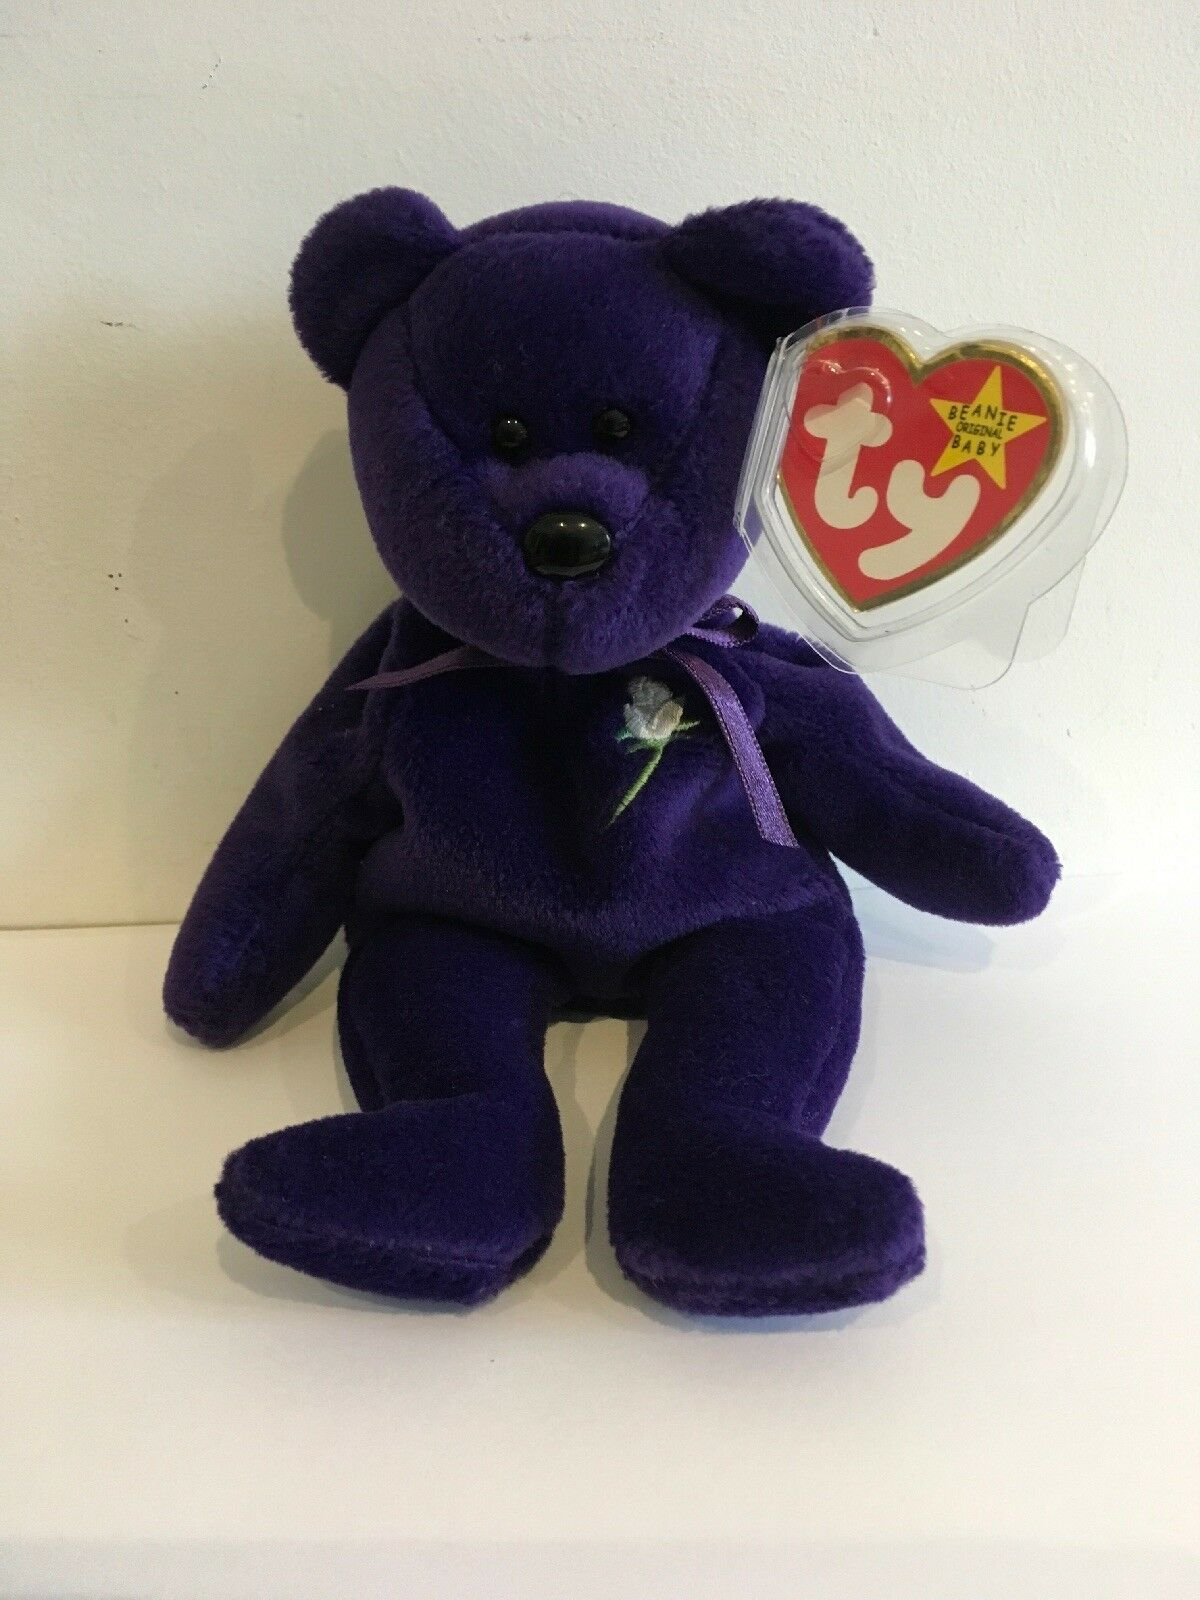 TY BEANIE 1st Edition PRINCESS DIANA BEAR - Made in Indonesia 1997